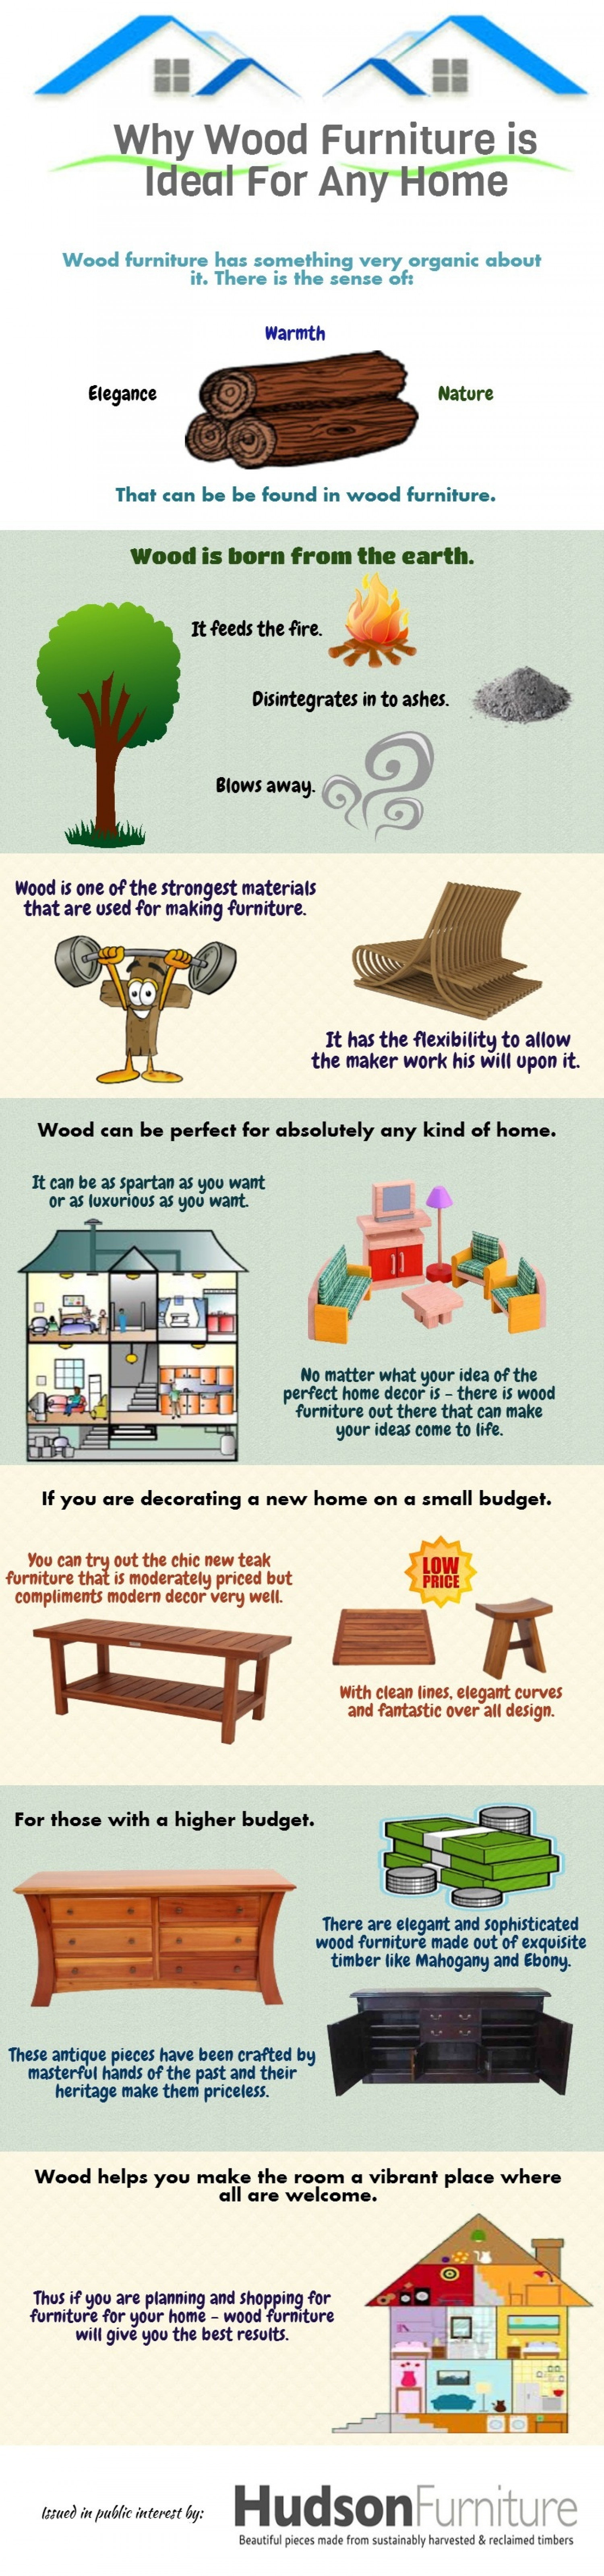 Why Wood Furniture is Ideal For Any Home Infographic